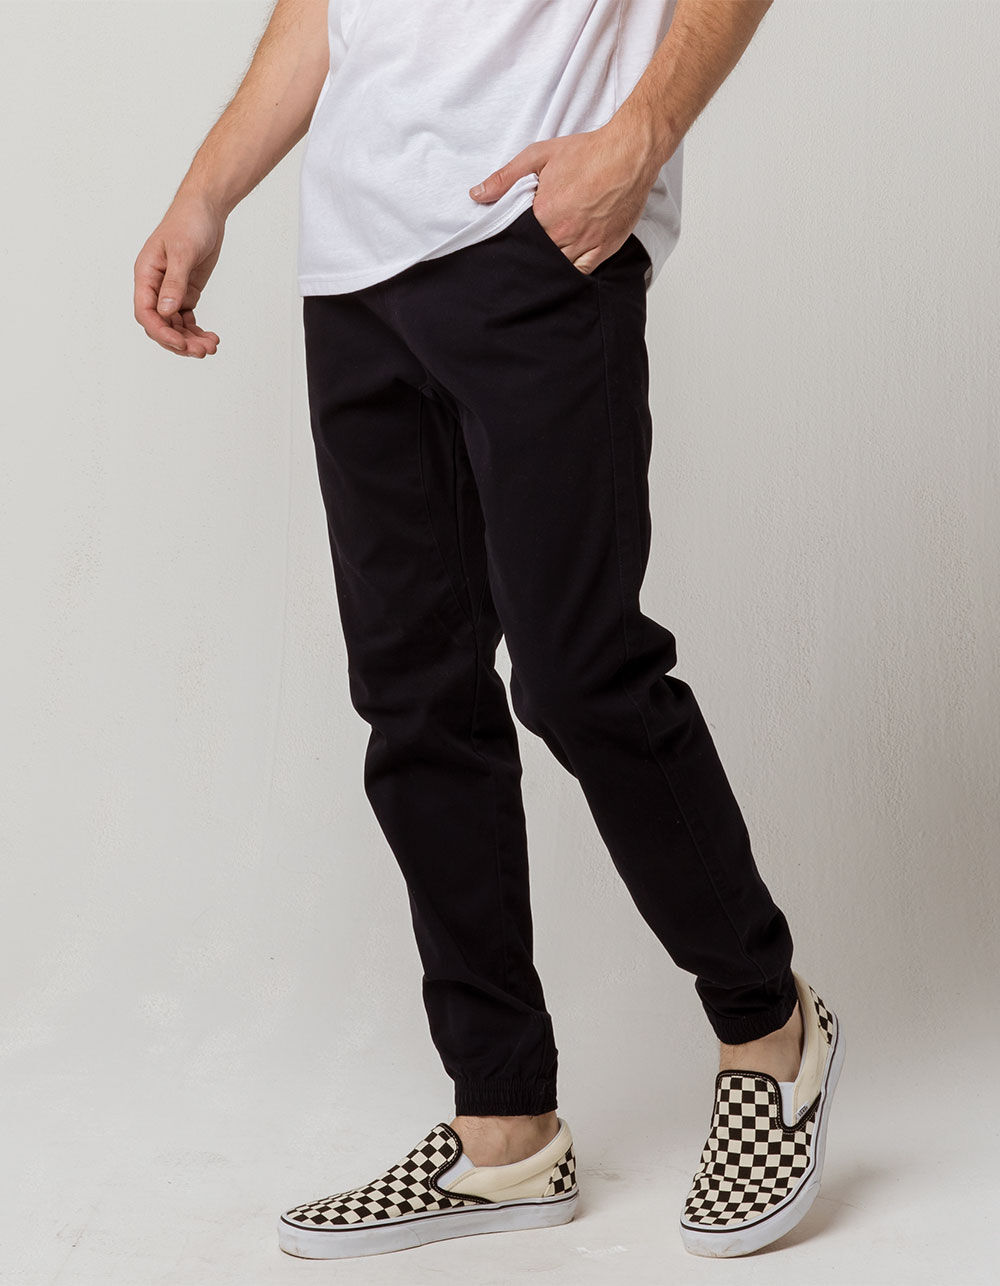 CHARLES AND A HALF Midnight Blue Twill Jogger Pants